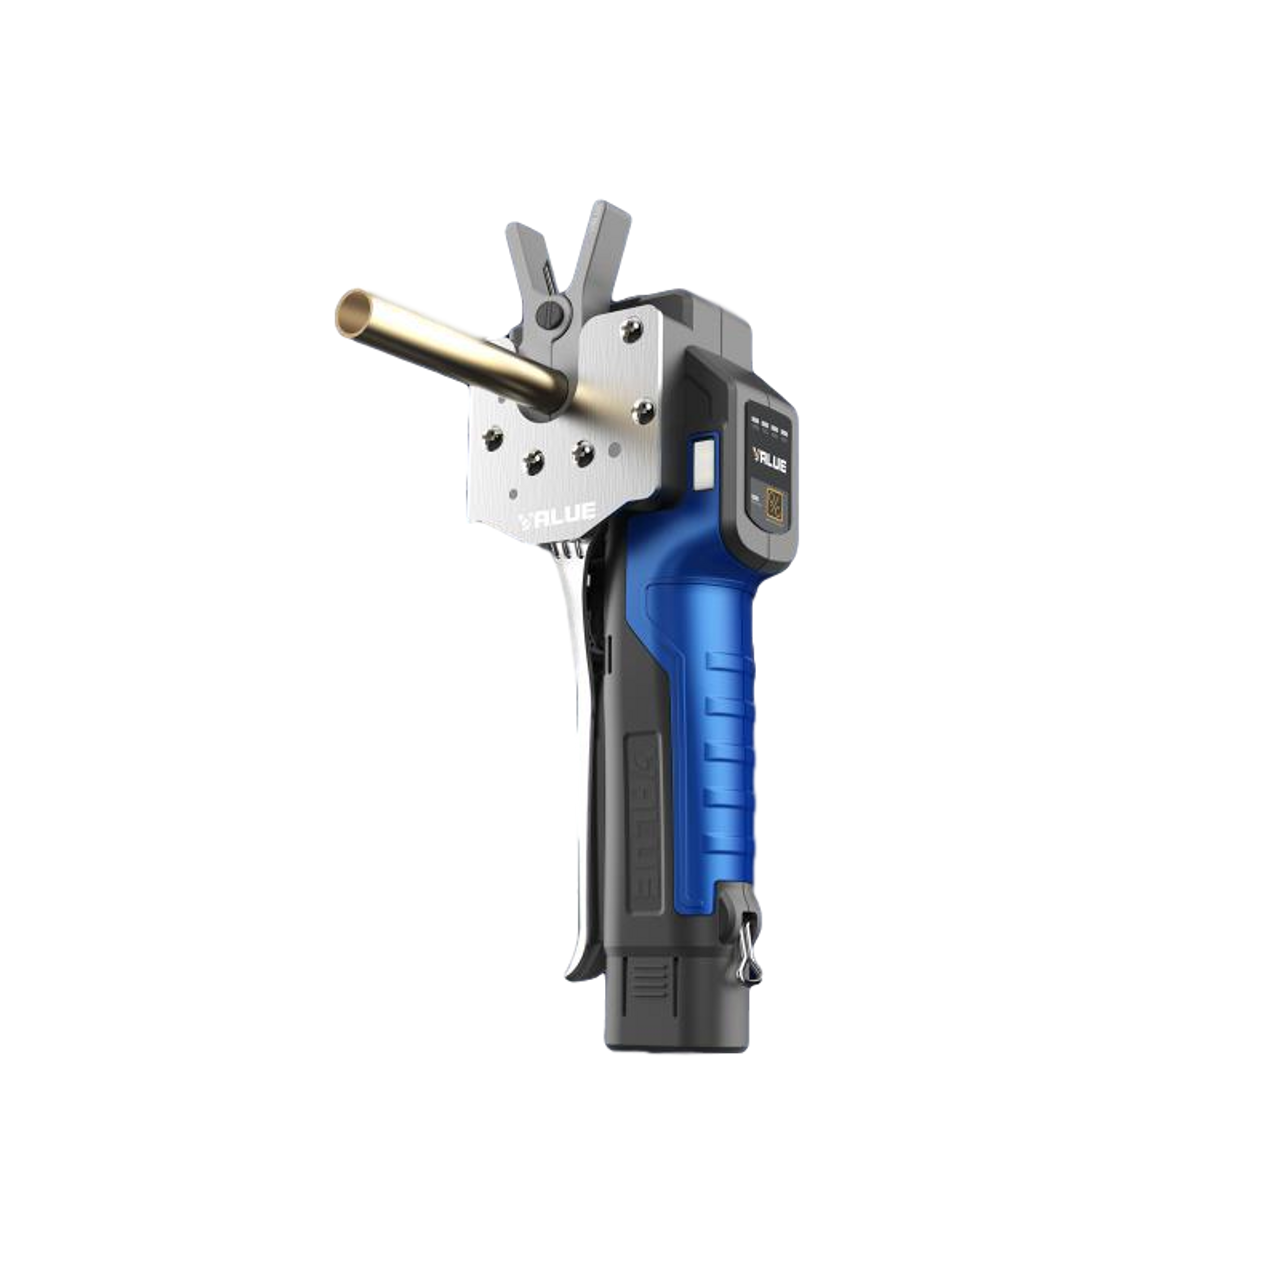 Cordless Flaring Tool - New Generation - Patented Design